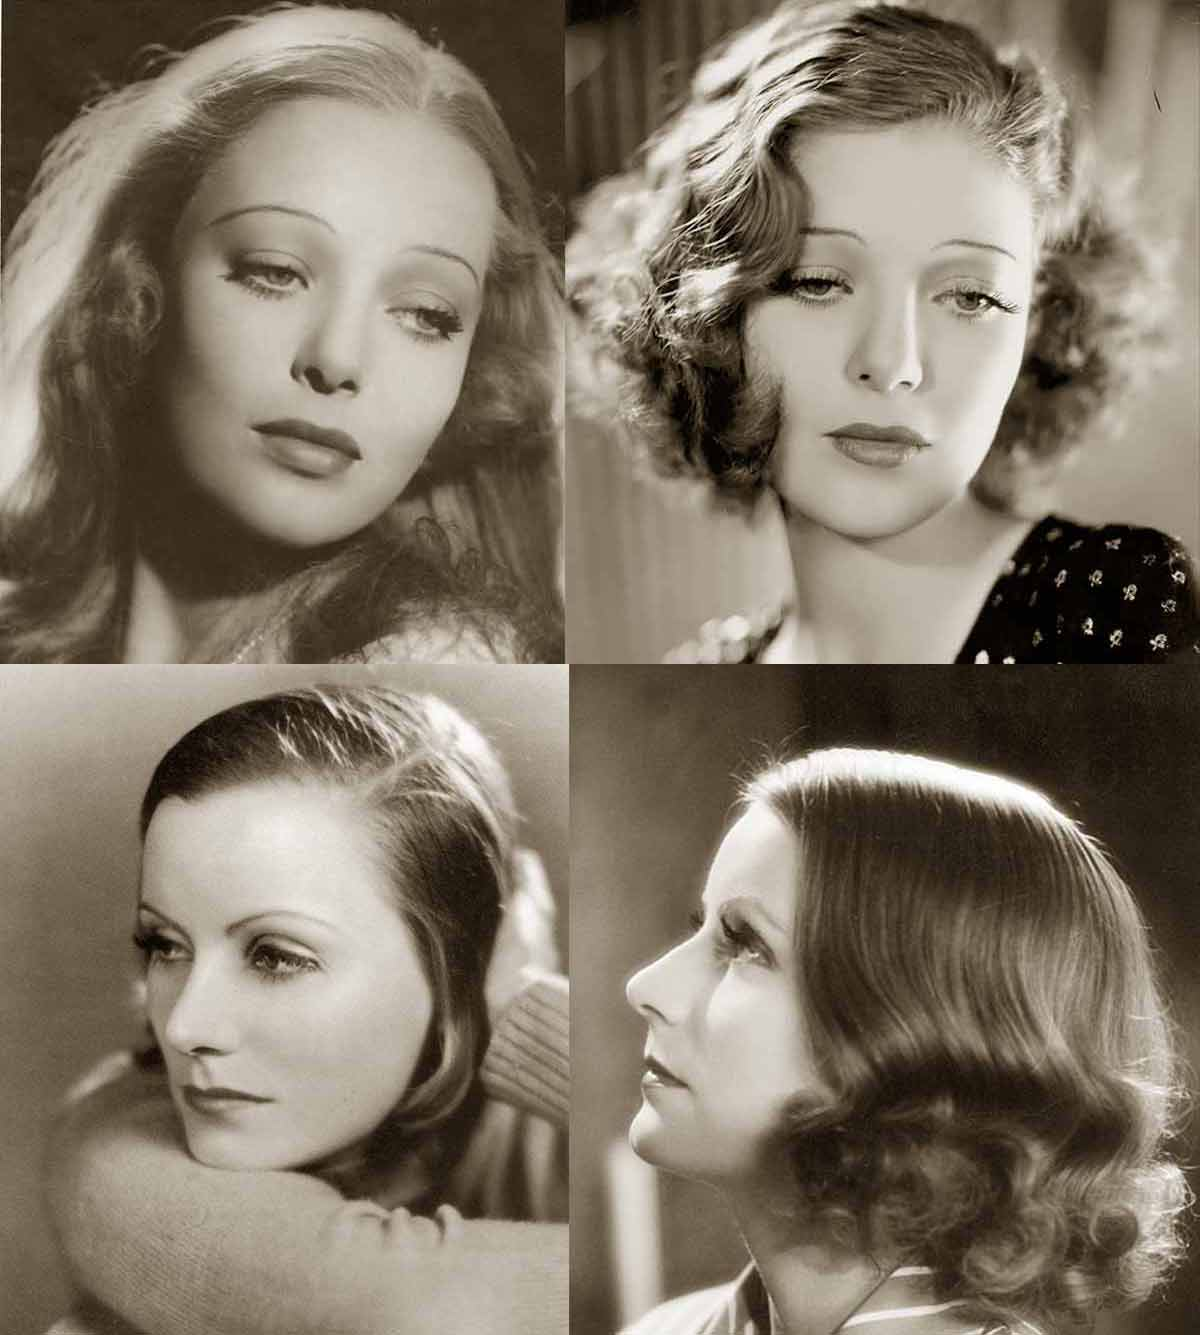 193039s Fashion Vintage Hair Salon 1934 Glamourdaze